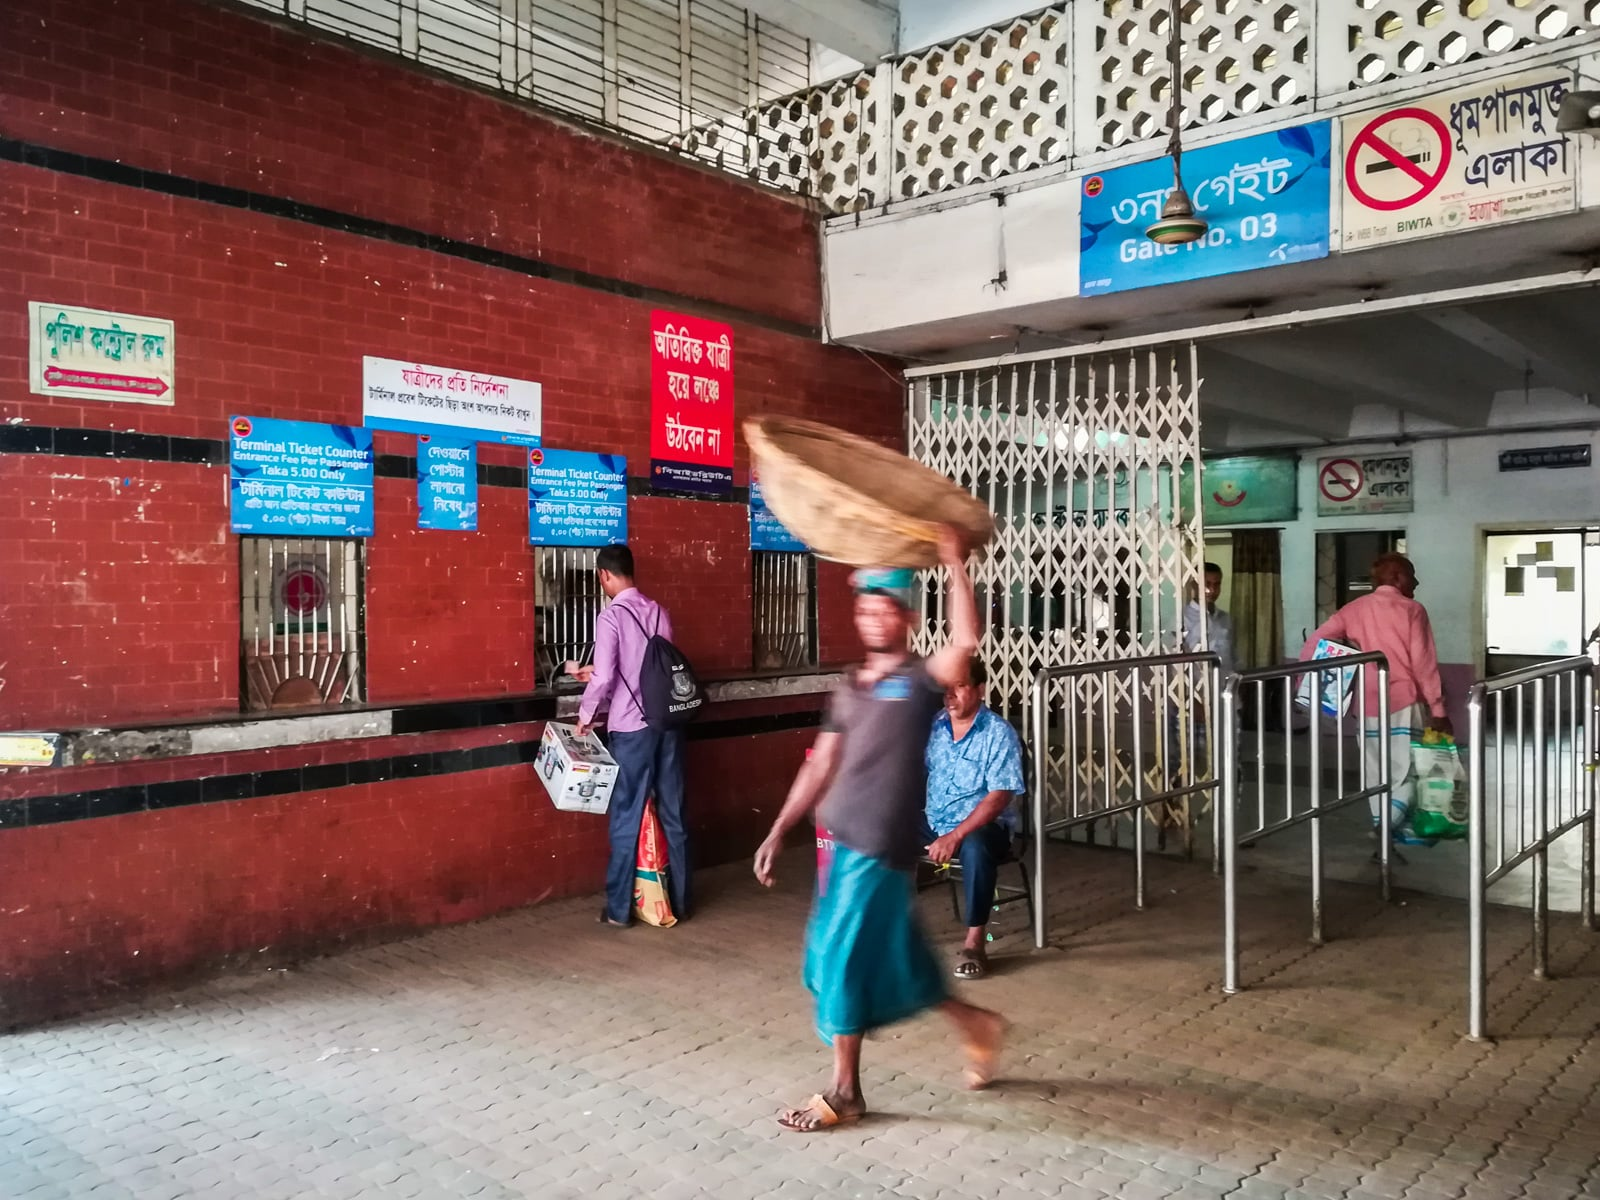 Guide to launches in Bangladesh - Ticket window for Sadarghat in Dhaka - Lost With Purpose travel blog